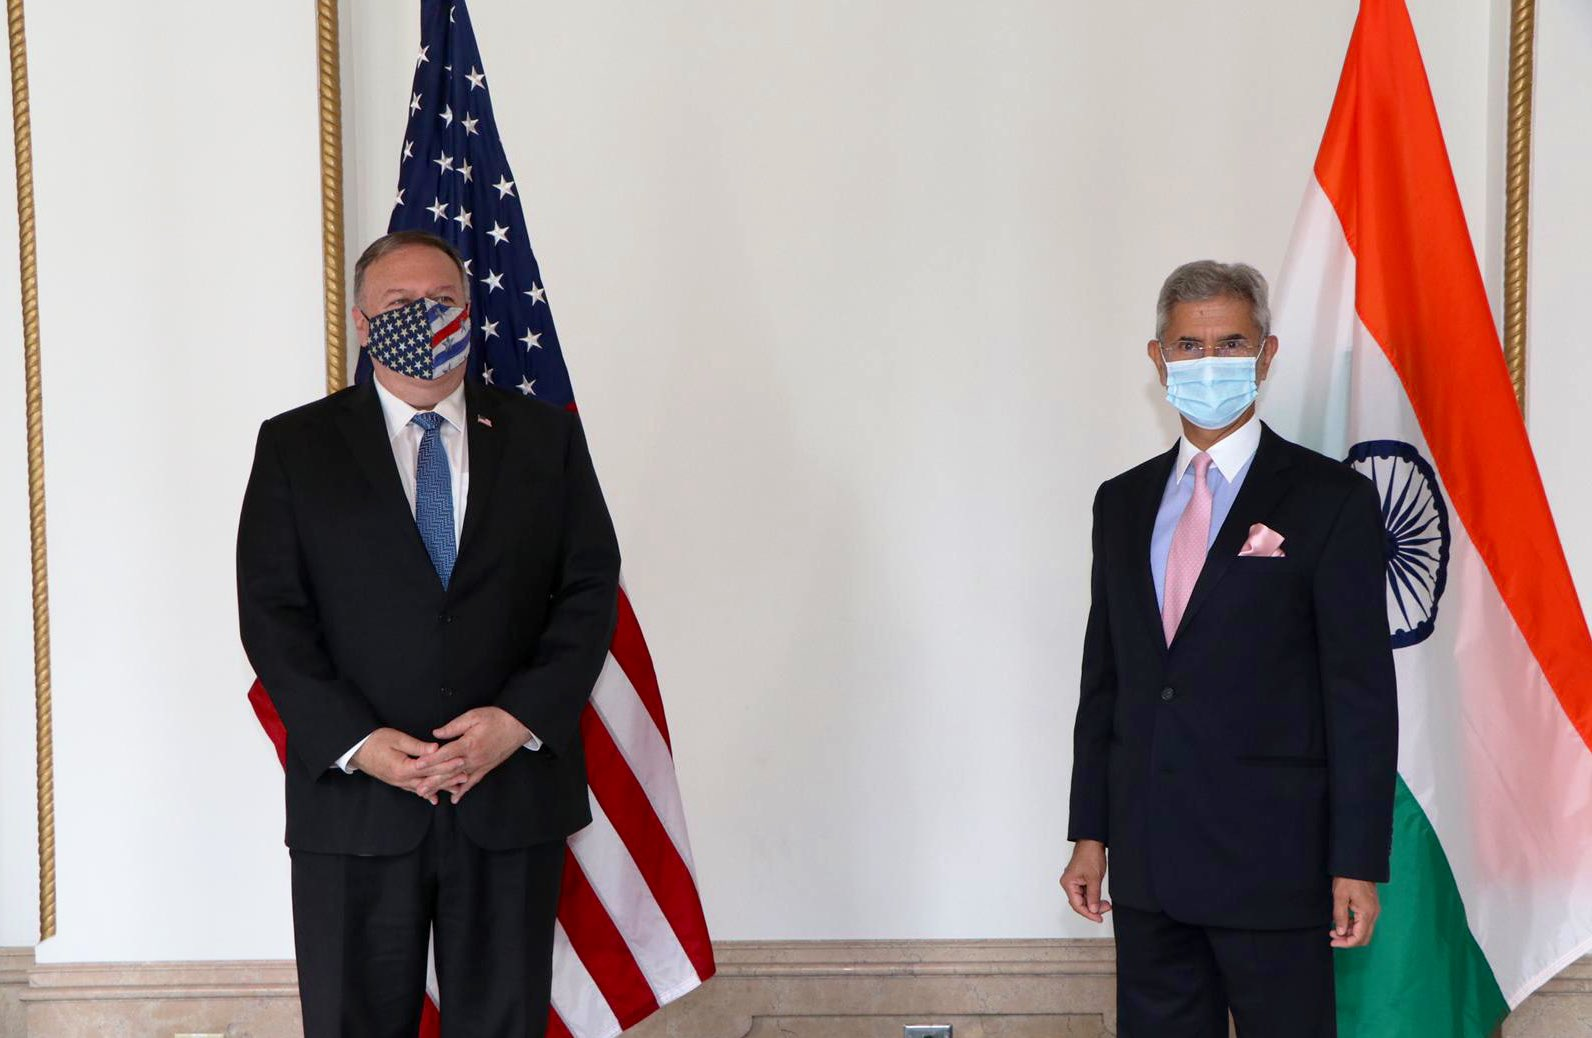 Indian External Affairs Minister S Jaishankar met United States Secretary of State Mike Pompeo